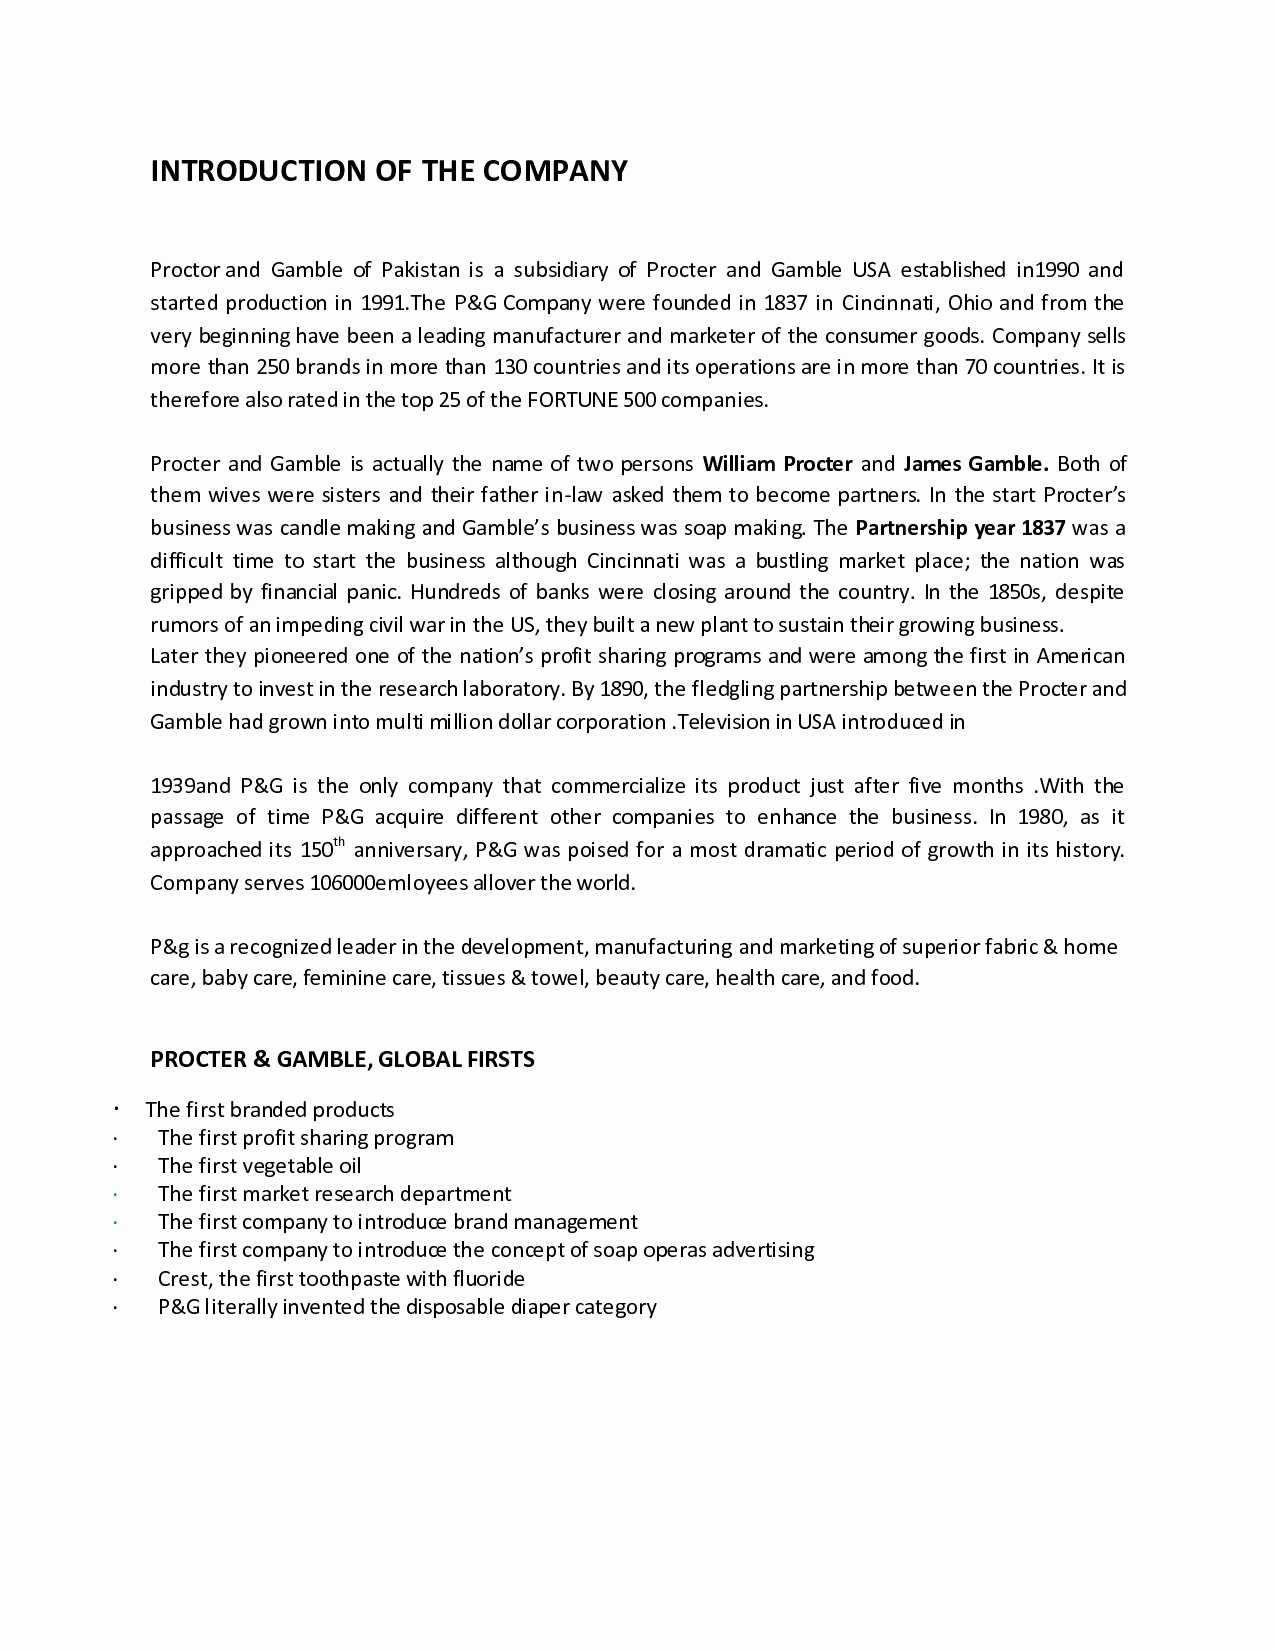 Business Cover Letter Template - Sample Email Cover Letter with Resume Unique Cover Letter Template